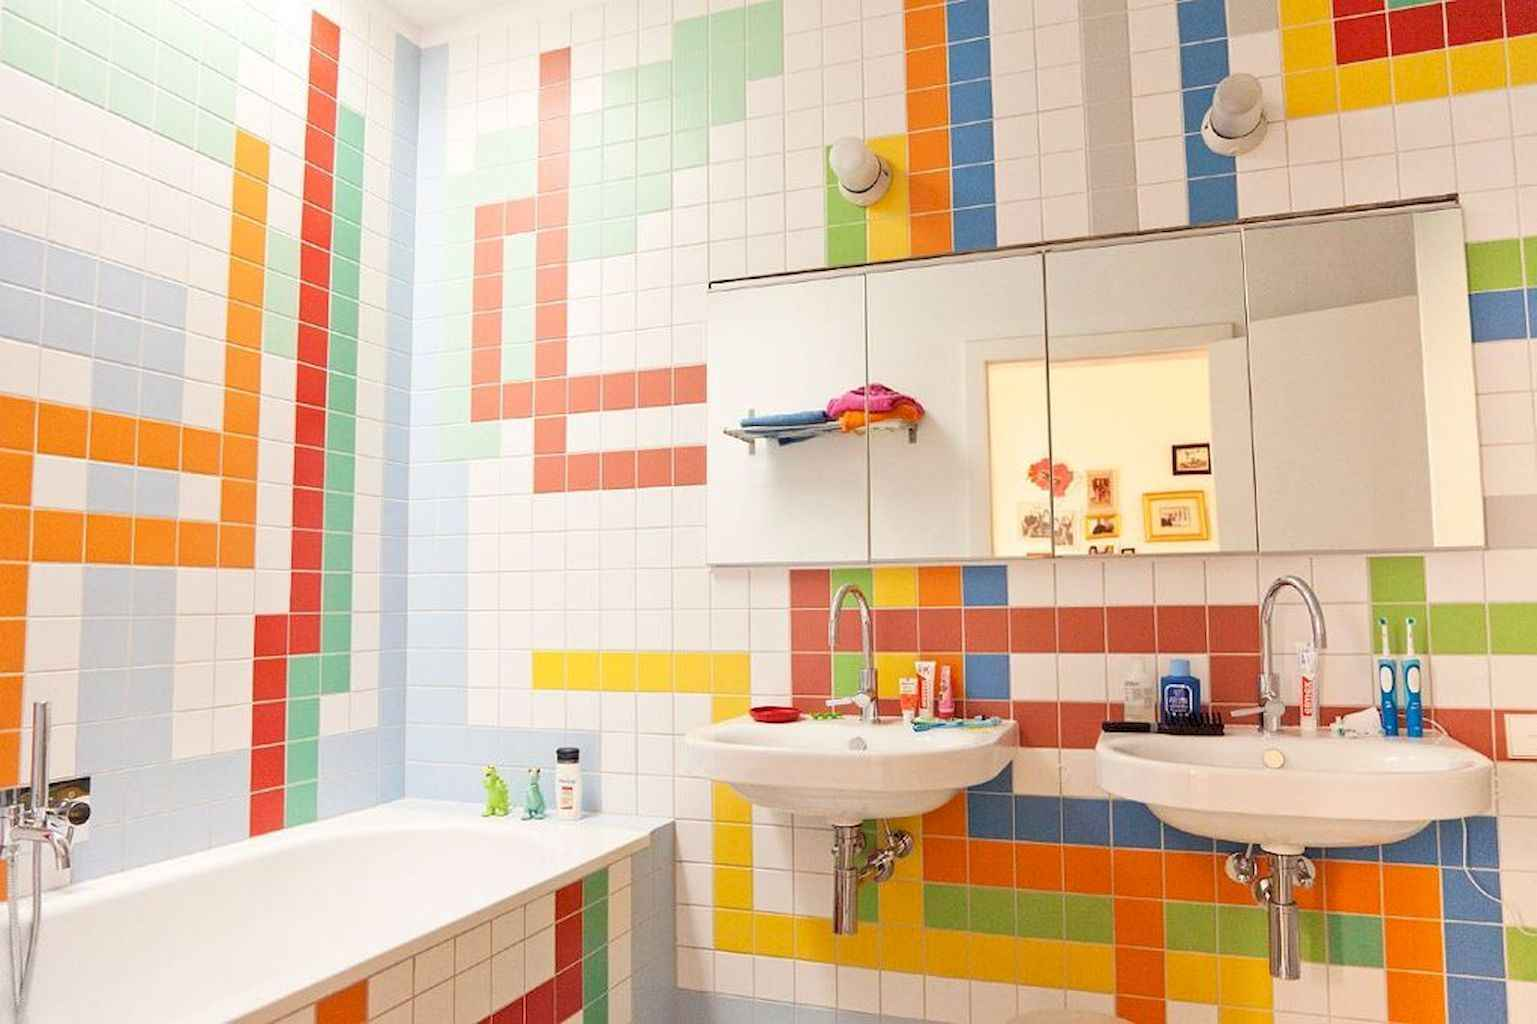 55 Cool and Relax Bathroom Decor Ideas (14)